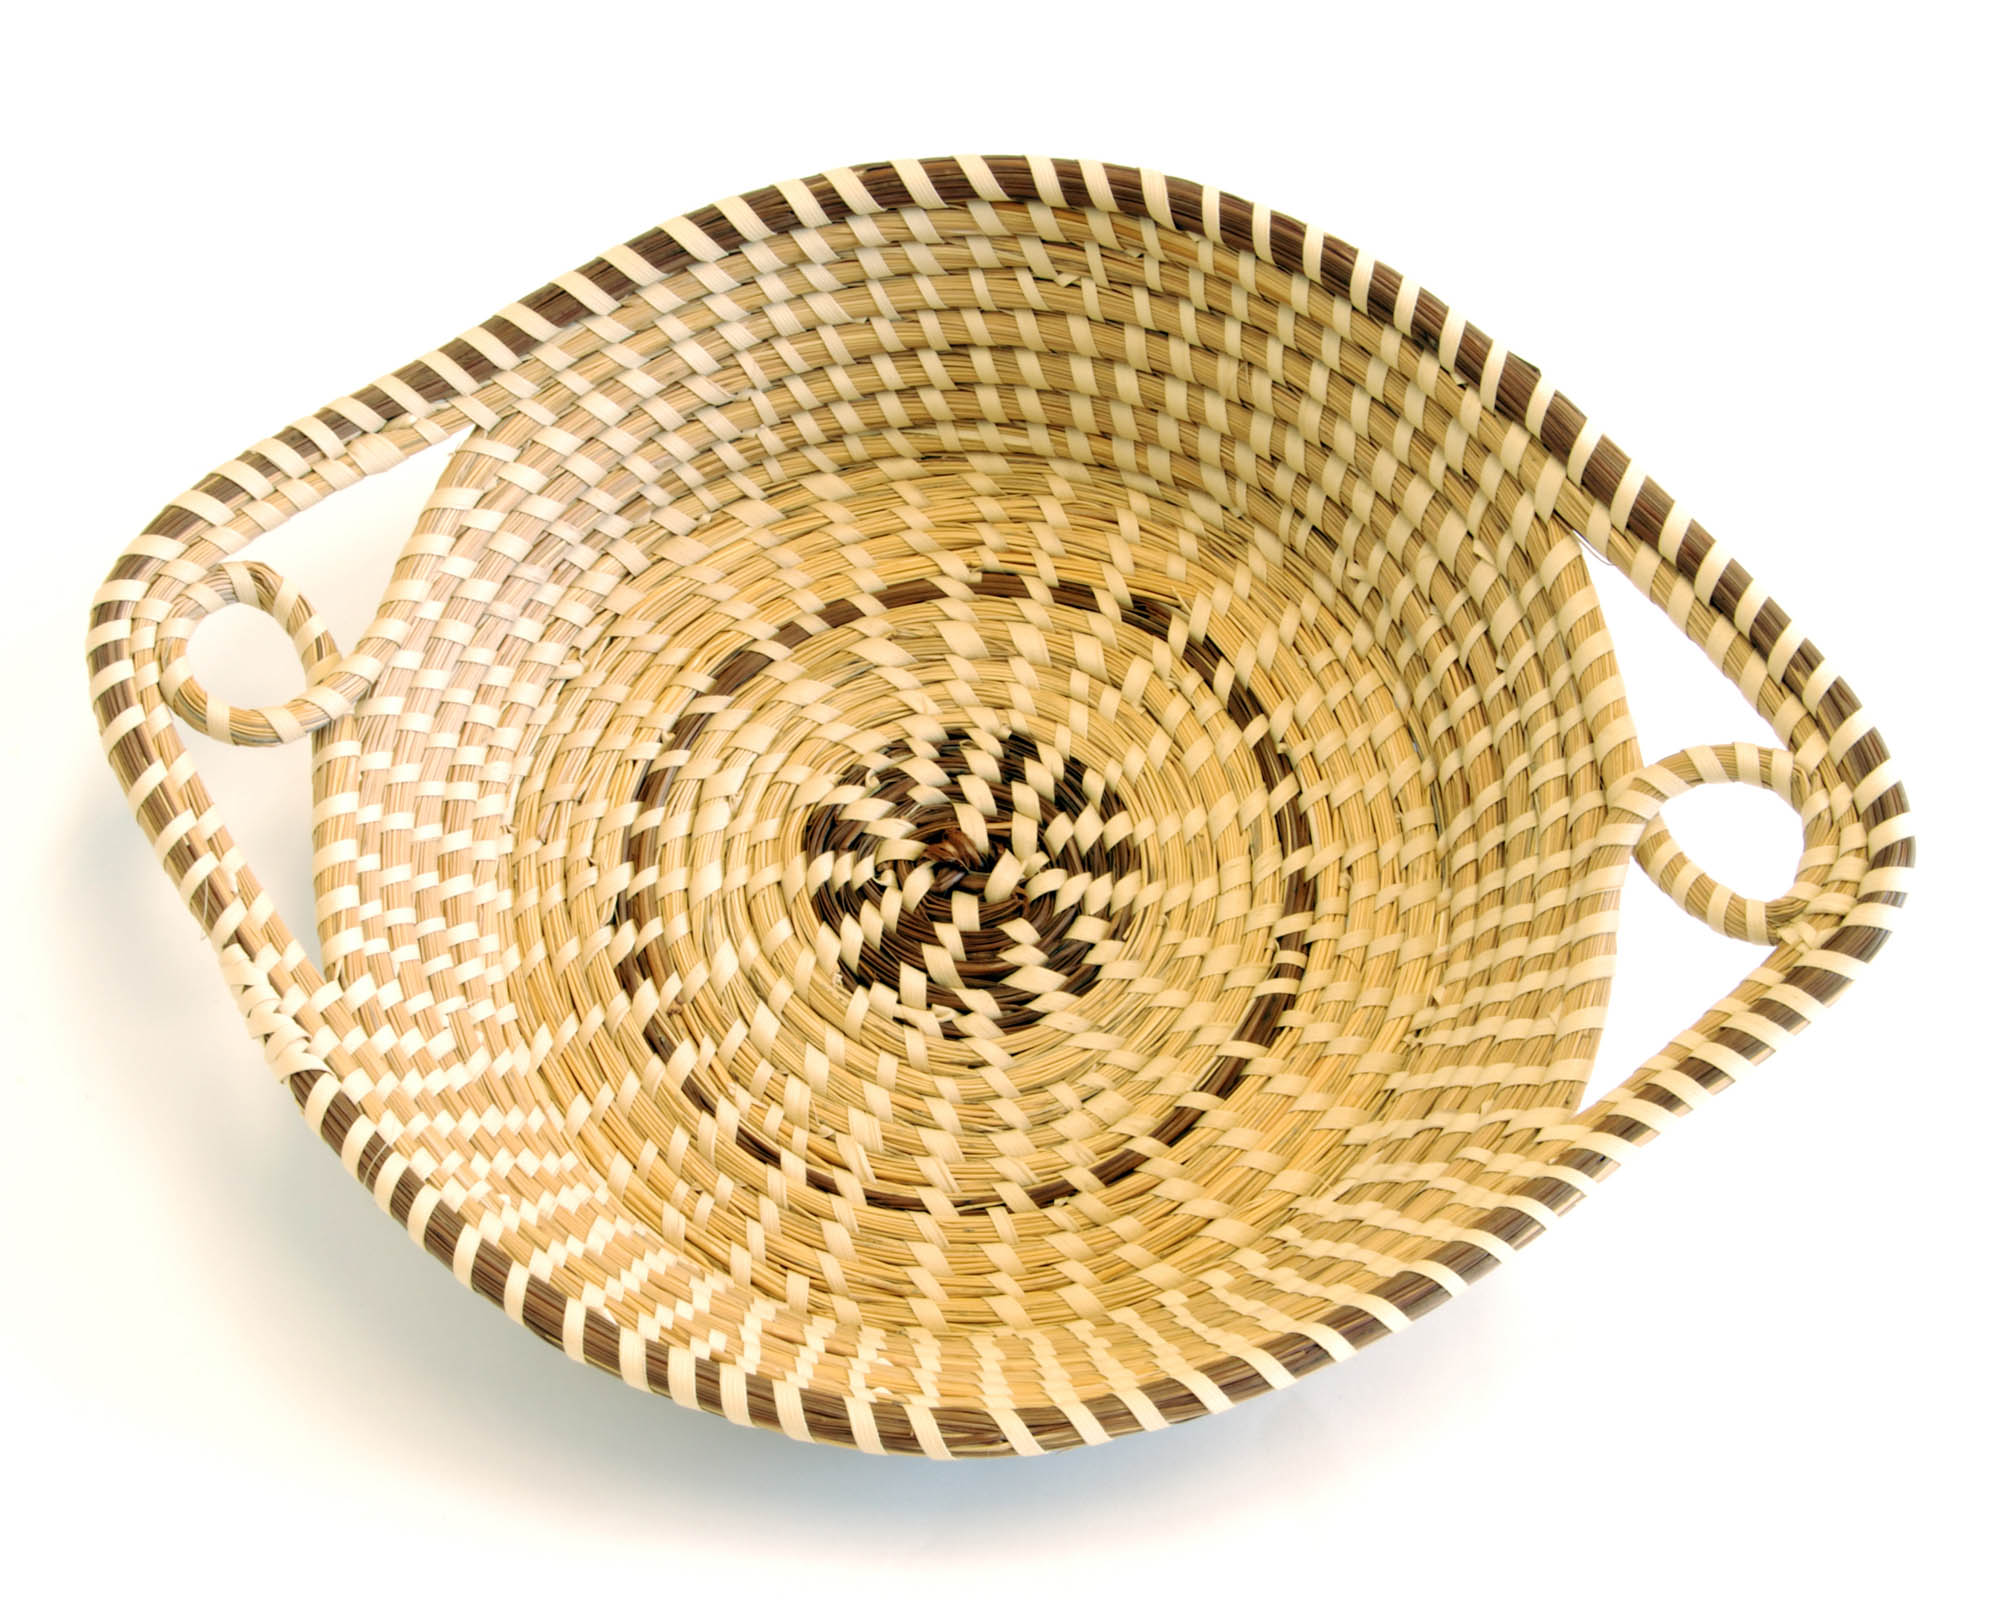 Sweetgrass basket with handles (Tray)